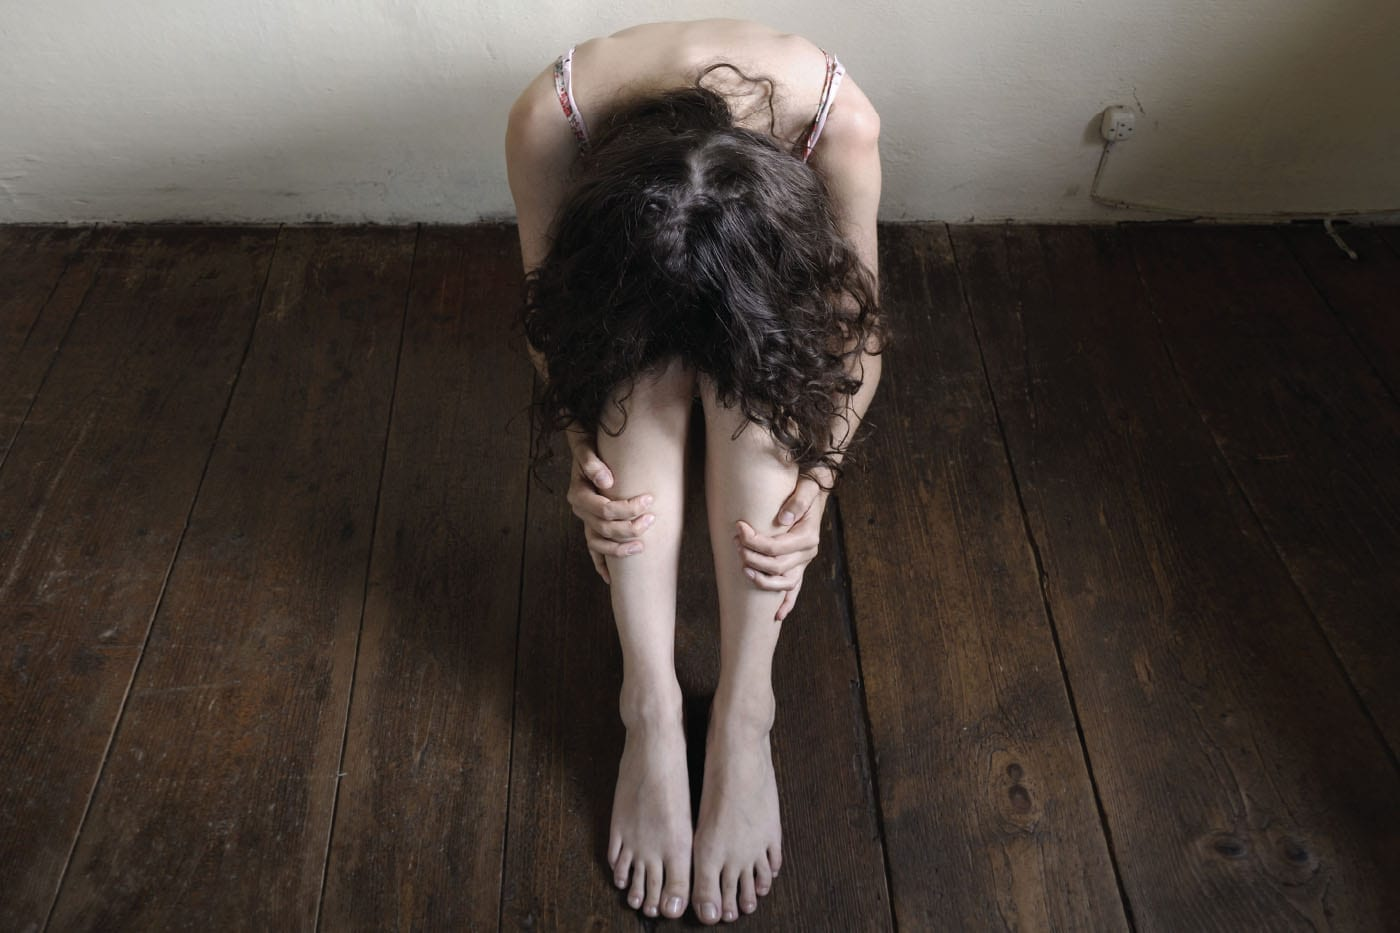 The Face of Human Trafficking - Woman Hunched Over